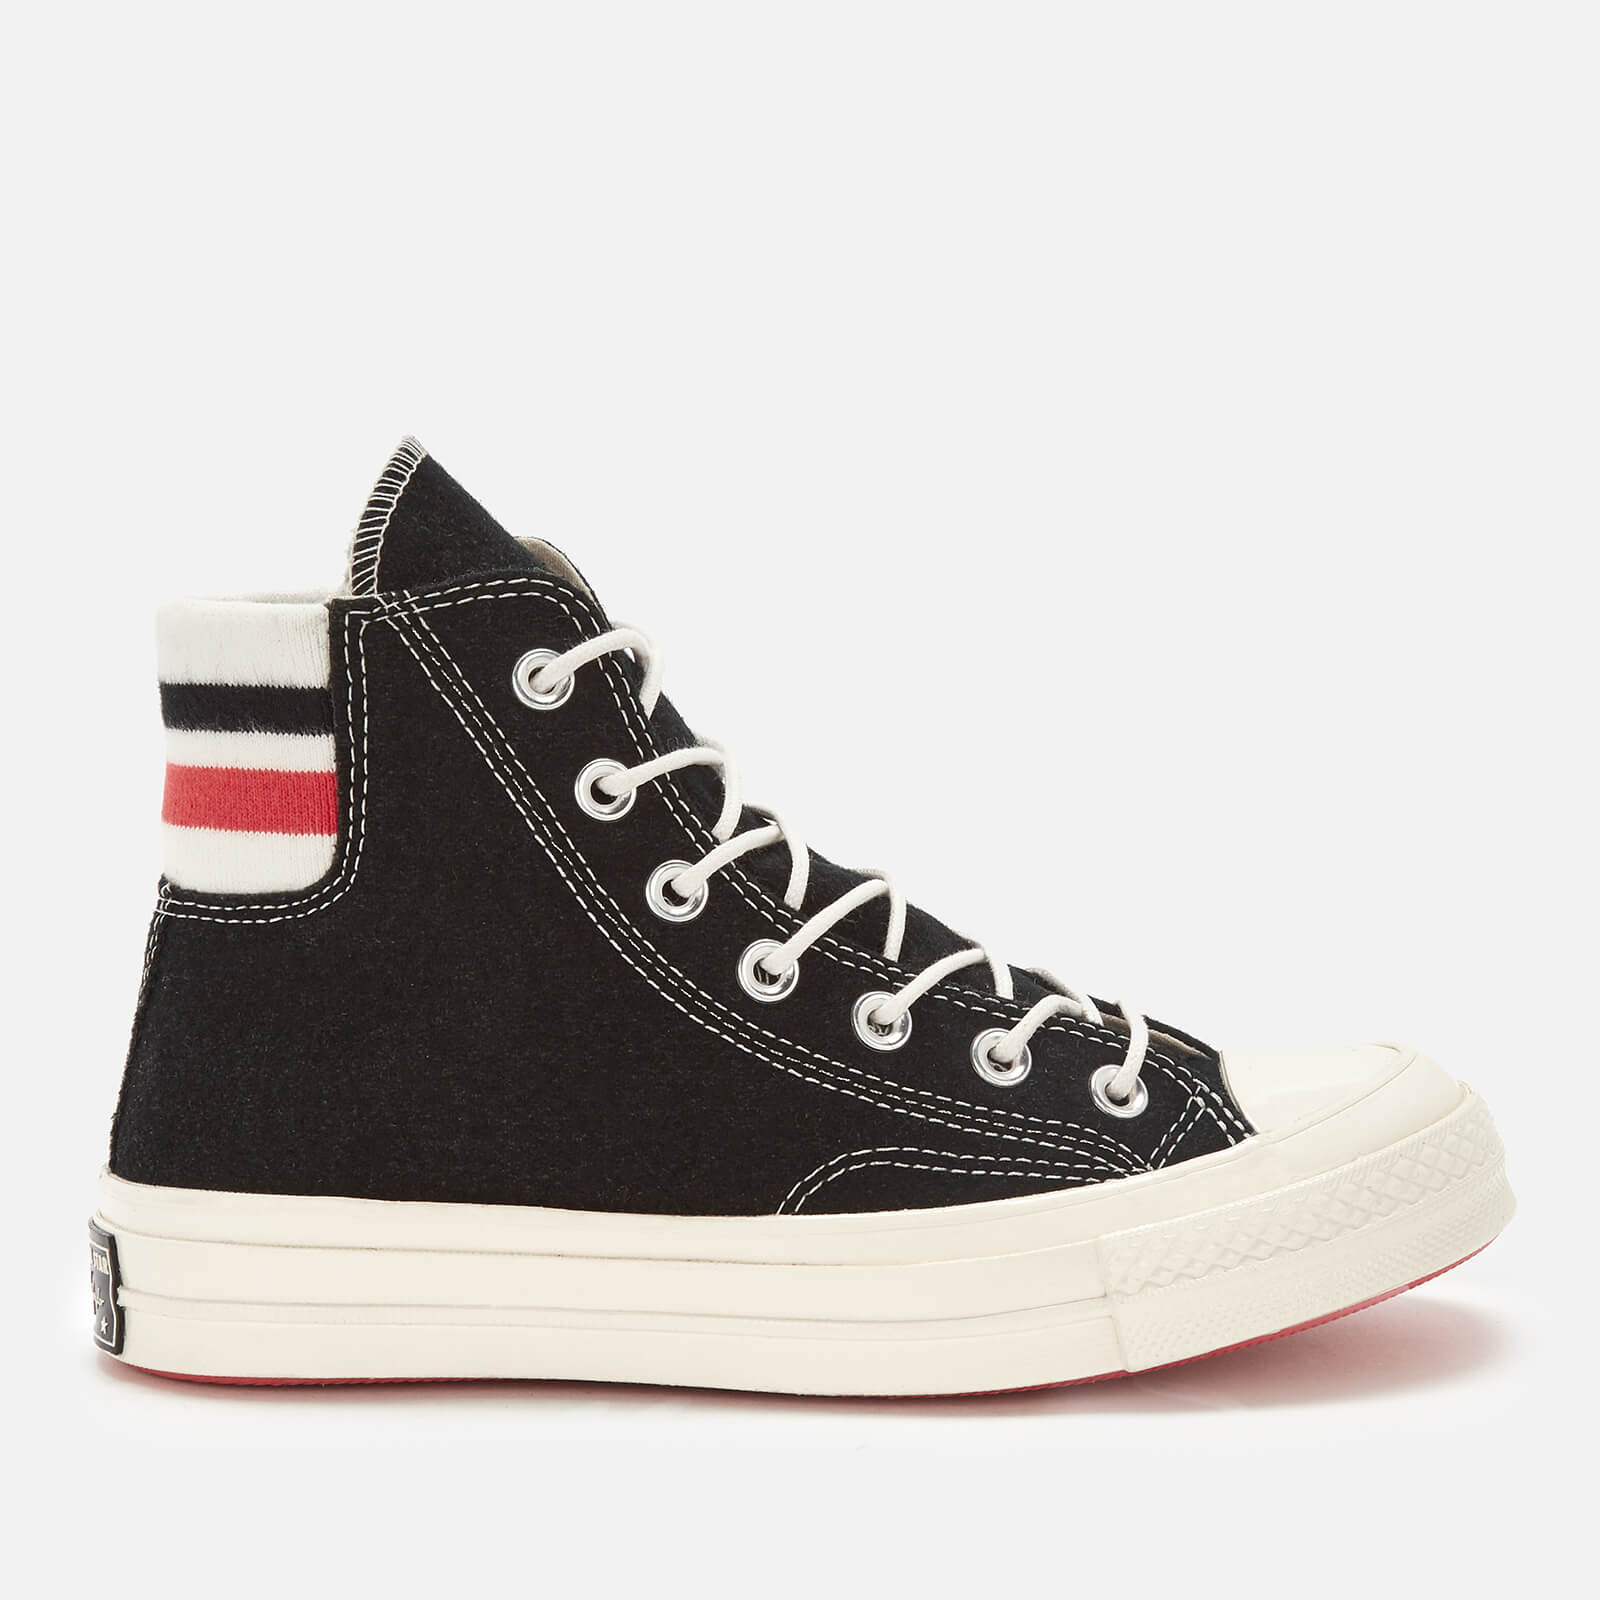 97e84a73cc0cae Converse Women s Chuck Taylor All Star 70 Hi-Top Trainers - Black Sedona  Red Egret - Free UK Delivery over £50